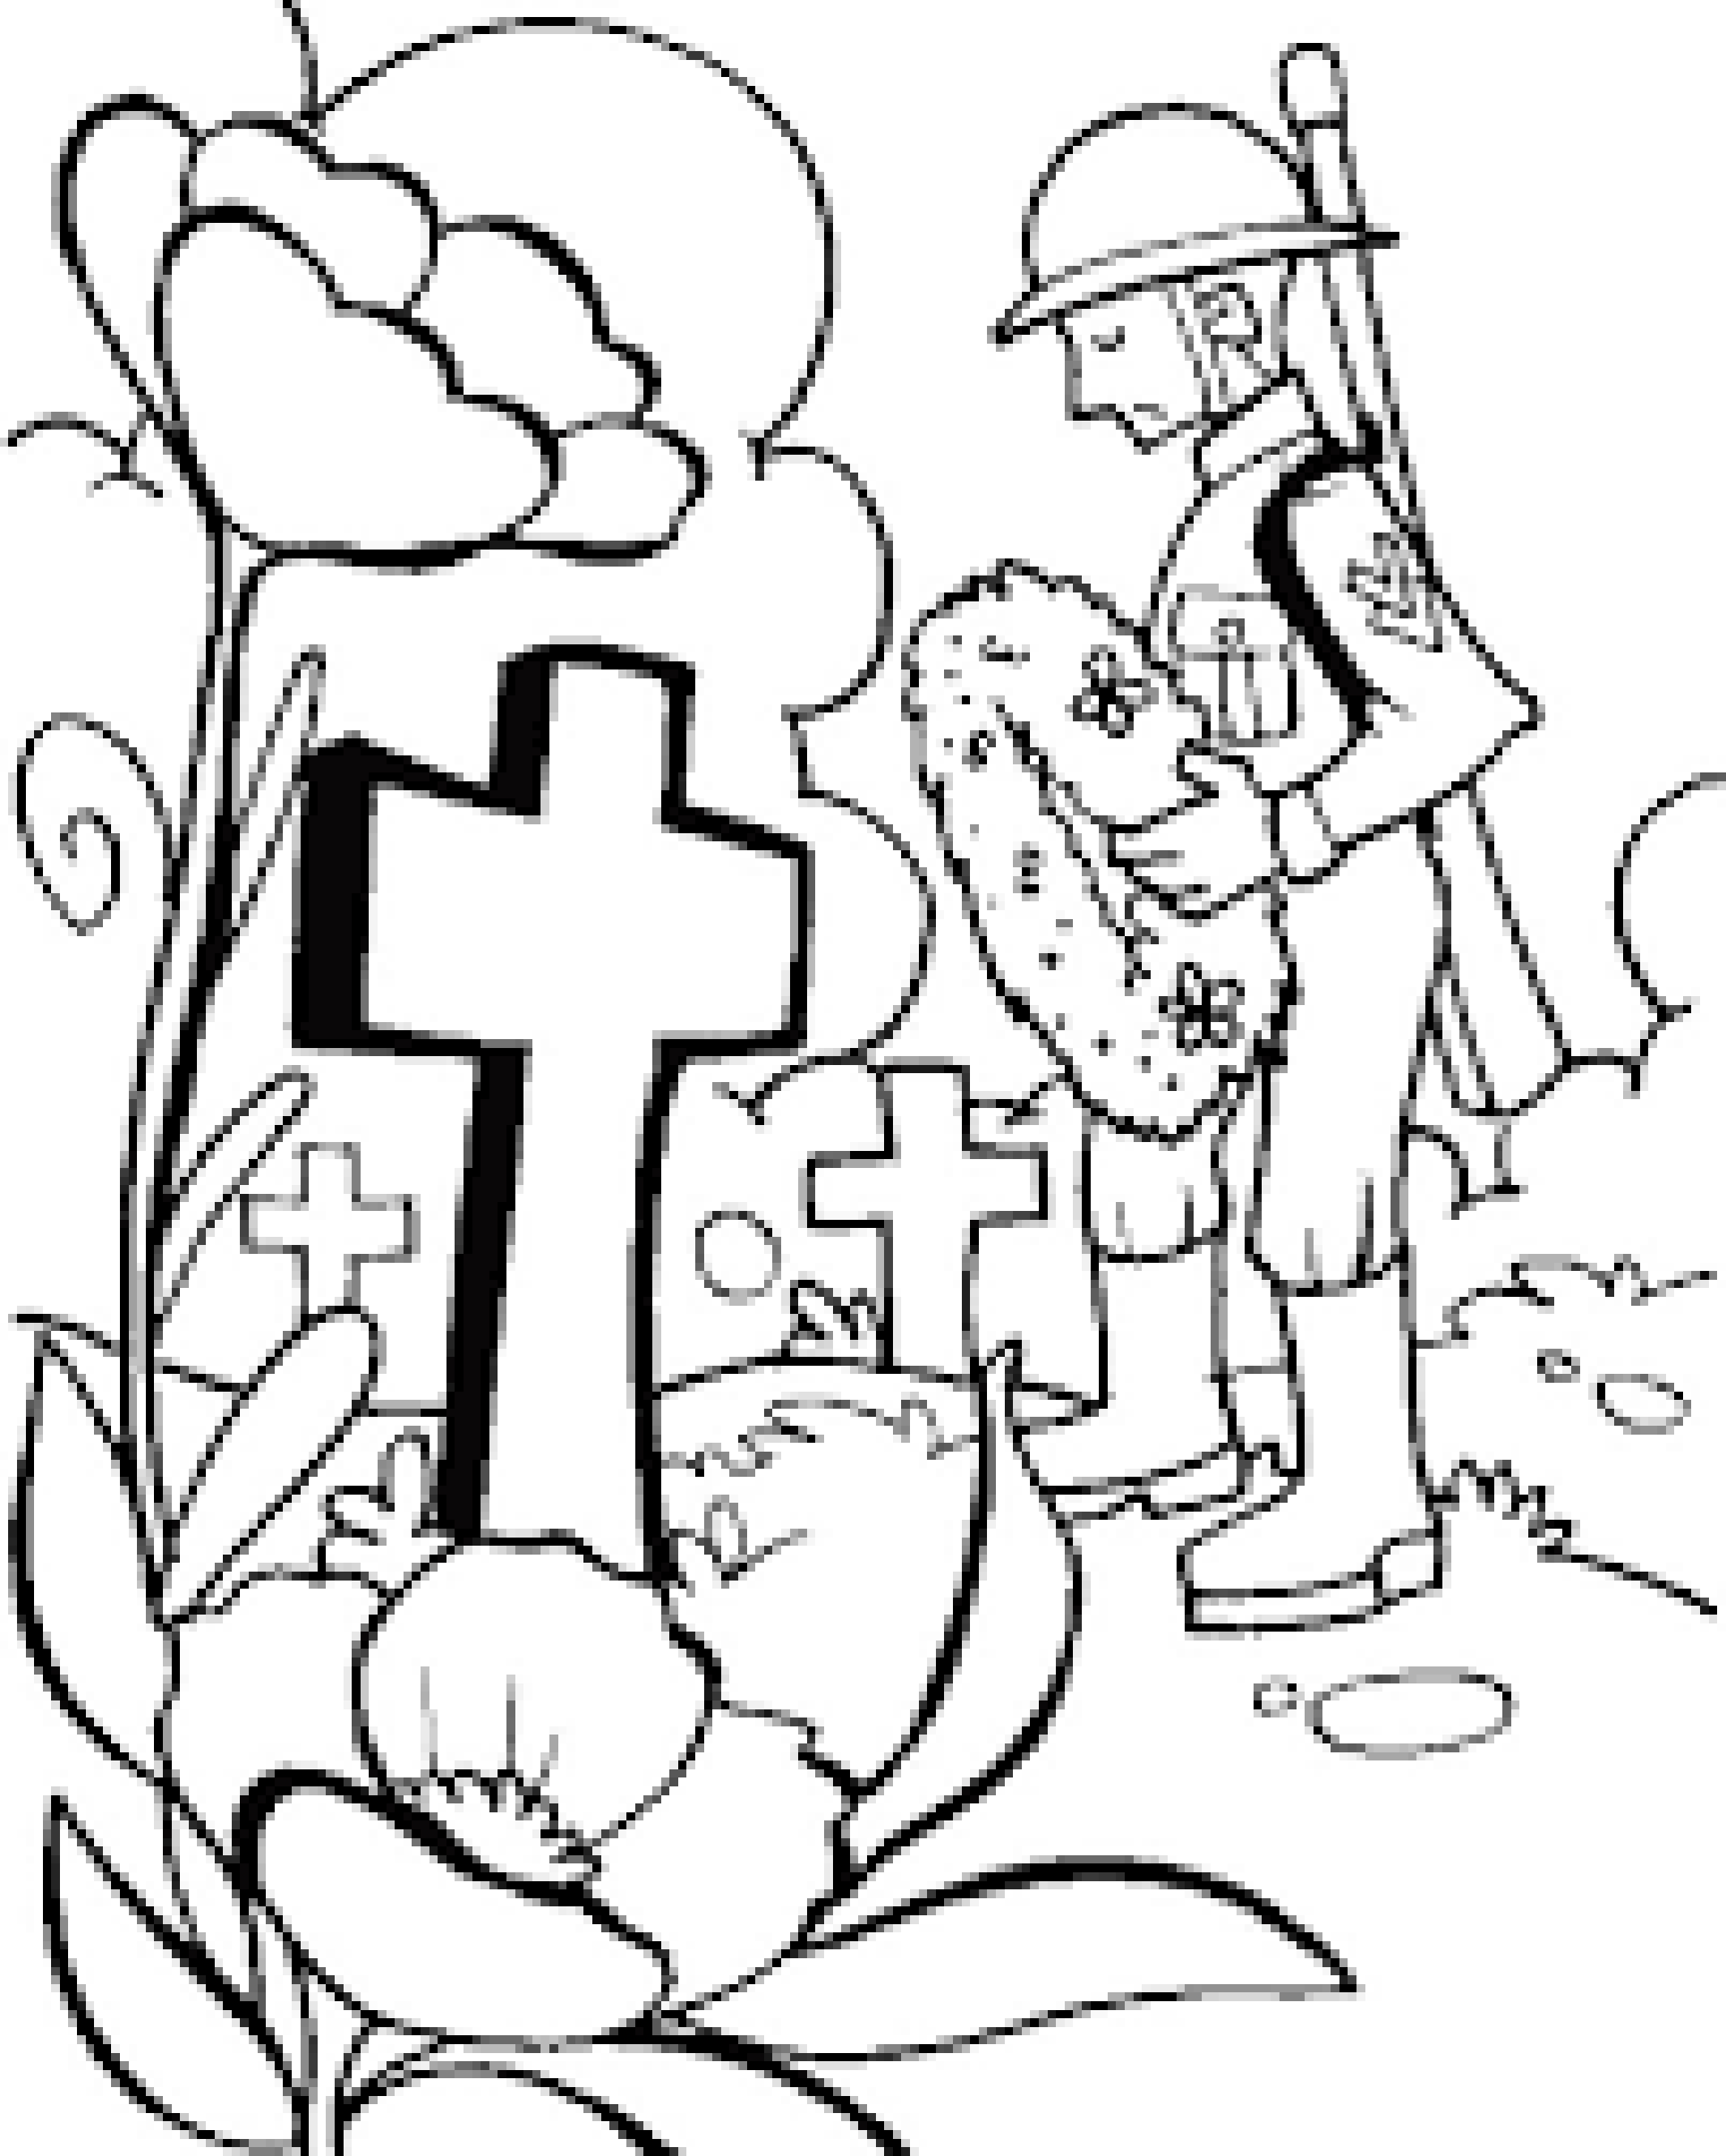 Memorial Day Coloring Pages Memorial Day Pics Memorial Day Poems Memorial Day For Memorial Day Coloring Pages Veterans Day Coloring Page Poppy Coloring Page